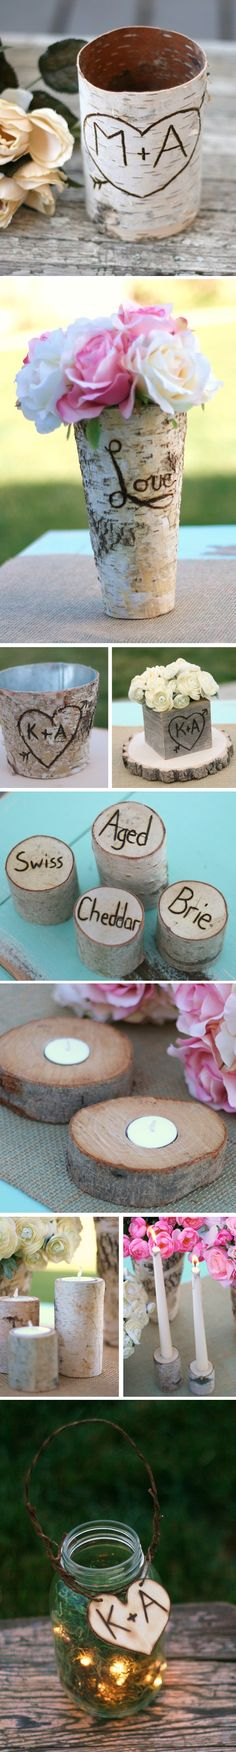 great blopost about wooden wedding decoration for rustic chic weddings